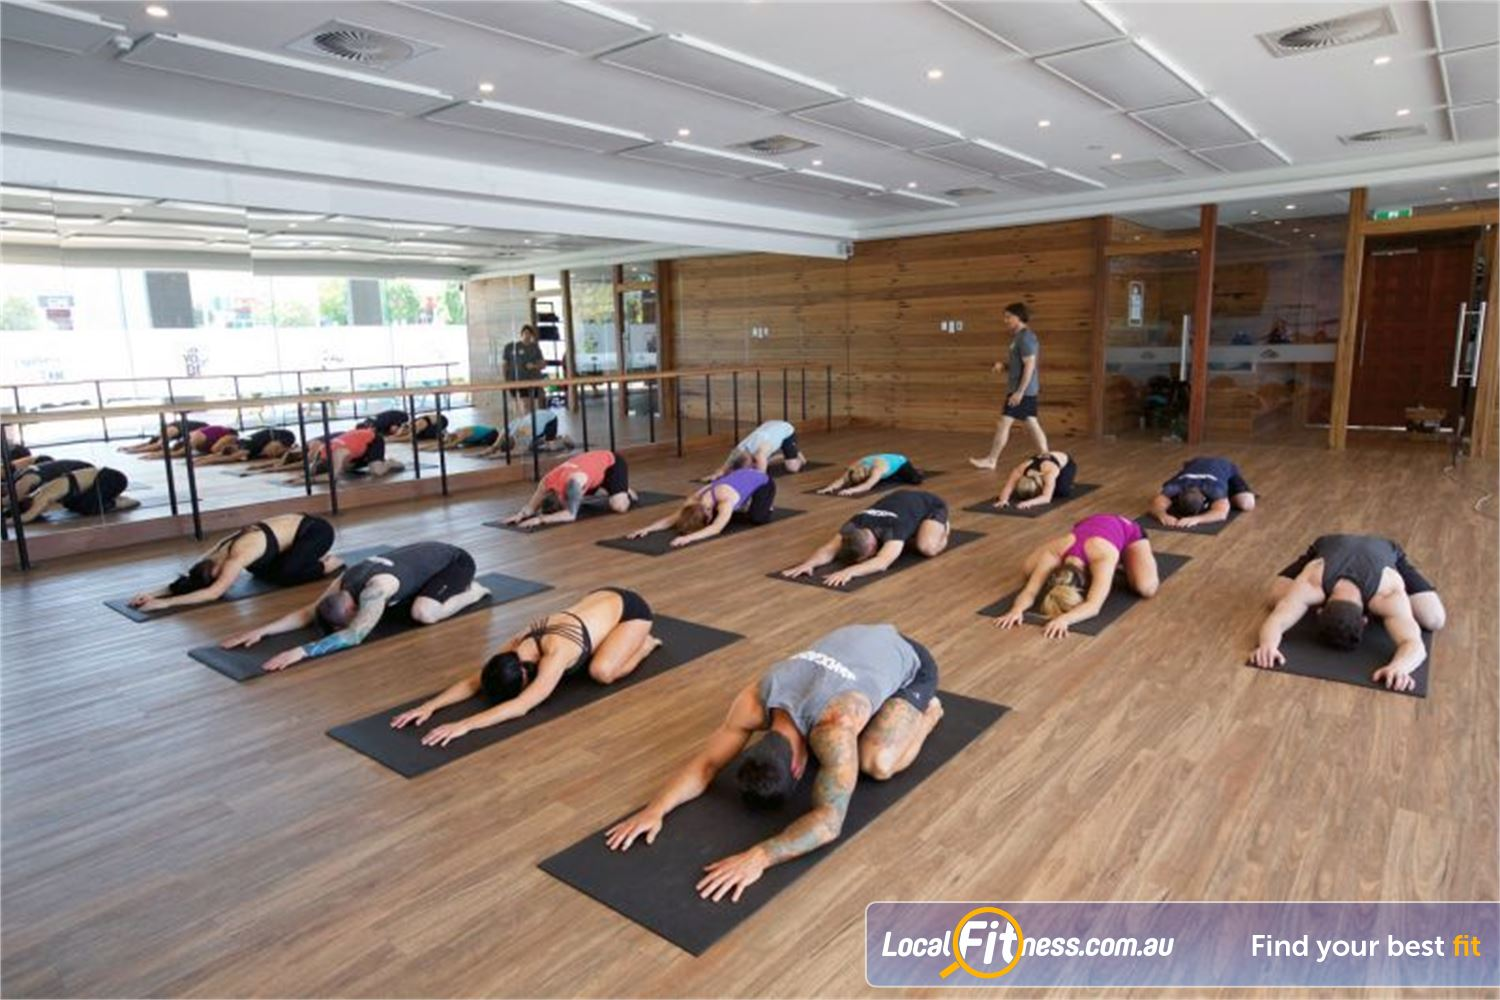 Goodlife Health Clubs Carindale Our Yogabox studio provides Carindale Yoga, Pilates and Barre classes.